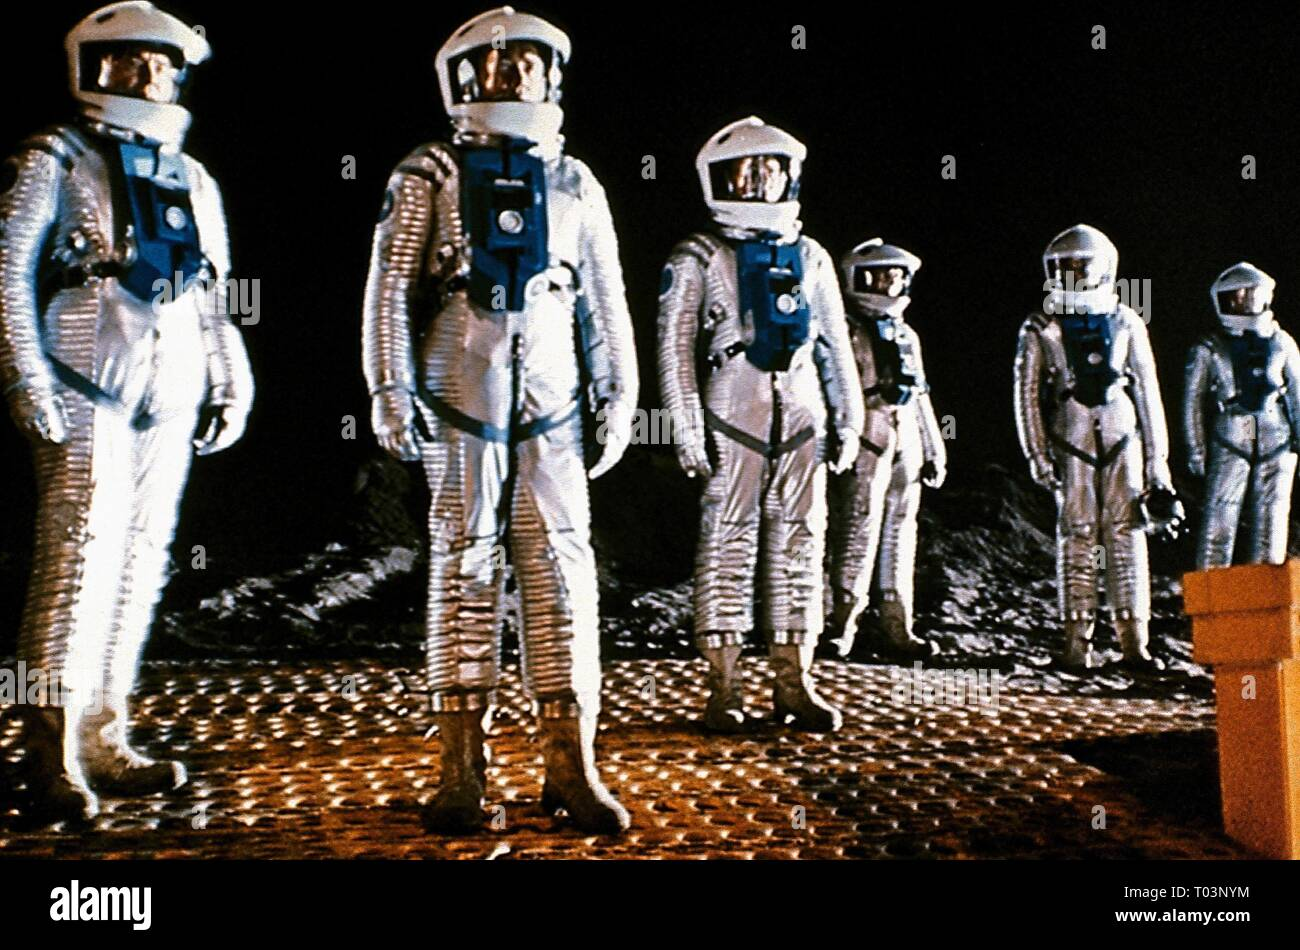 ASTRONAUTS, 2001: A SPACE ODYSSEY, 1968 - Stock Image